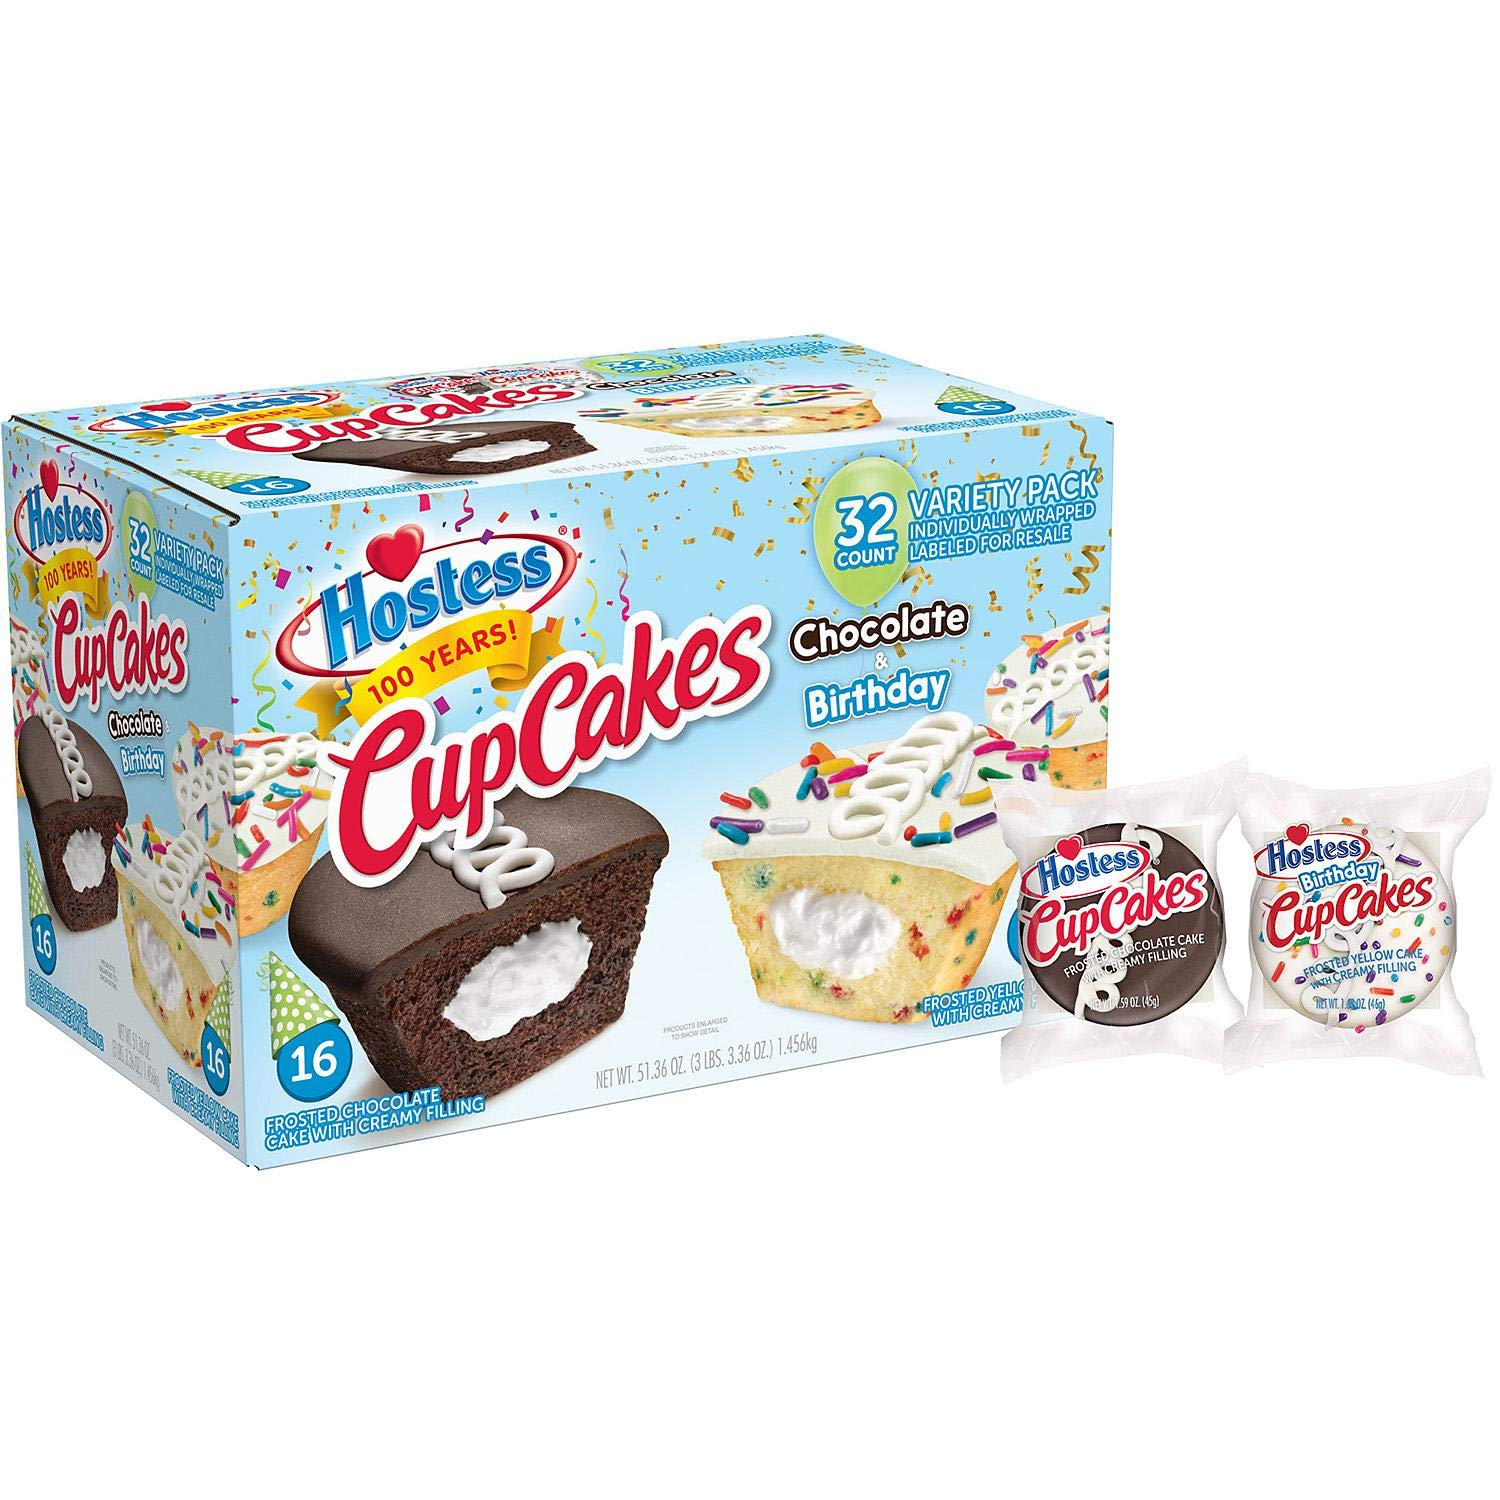 Hostess Original Cupcakes & Birthday Cupcake Variety Pack, 32 count by Hot Deals Warehouse